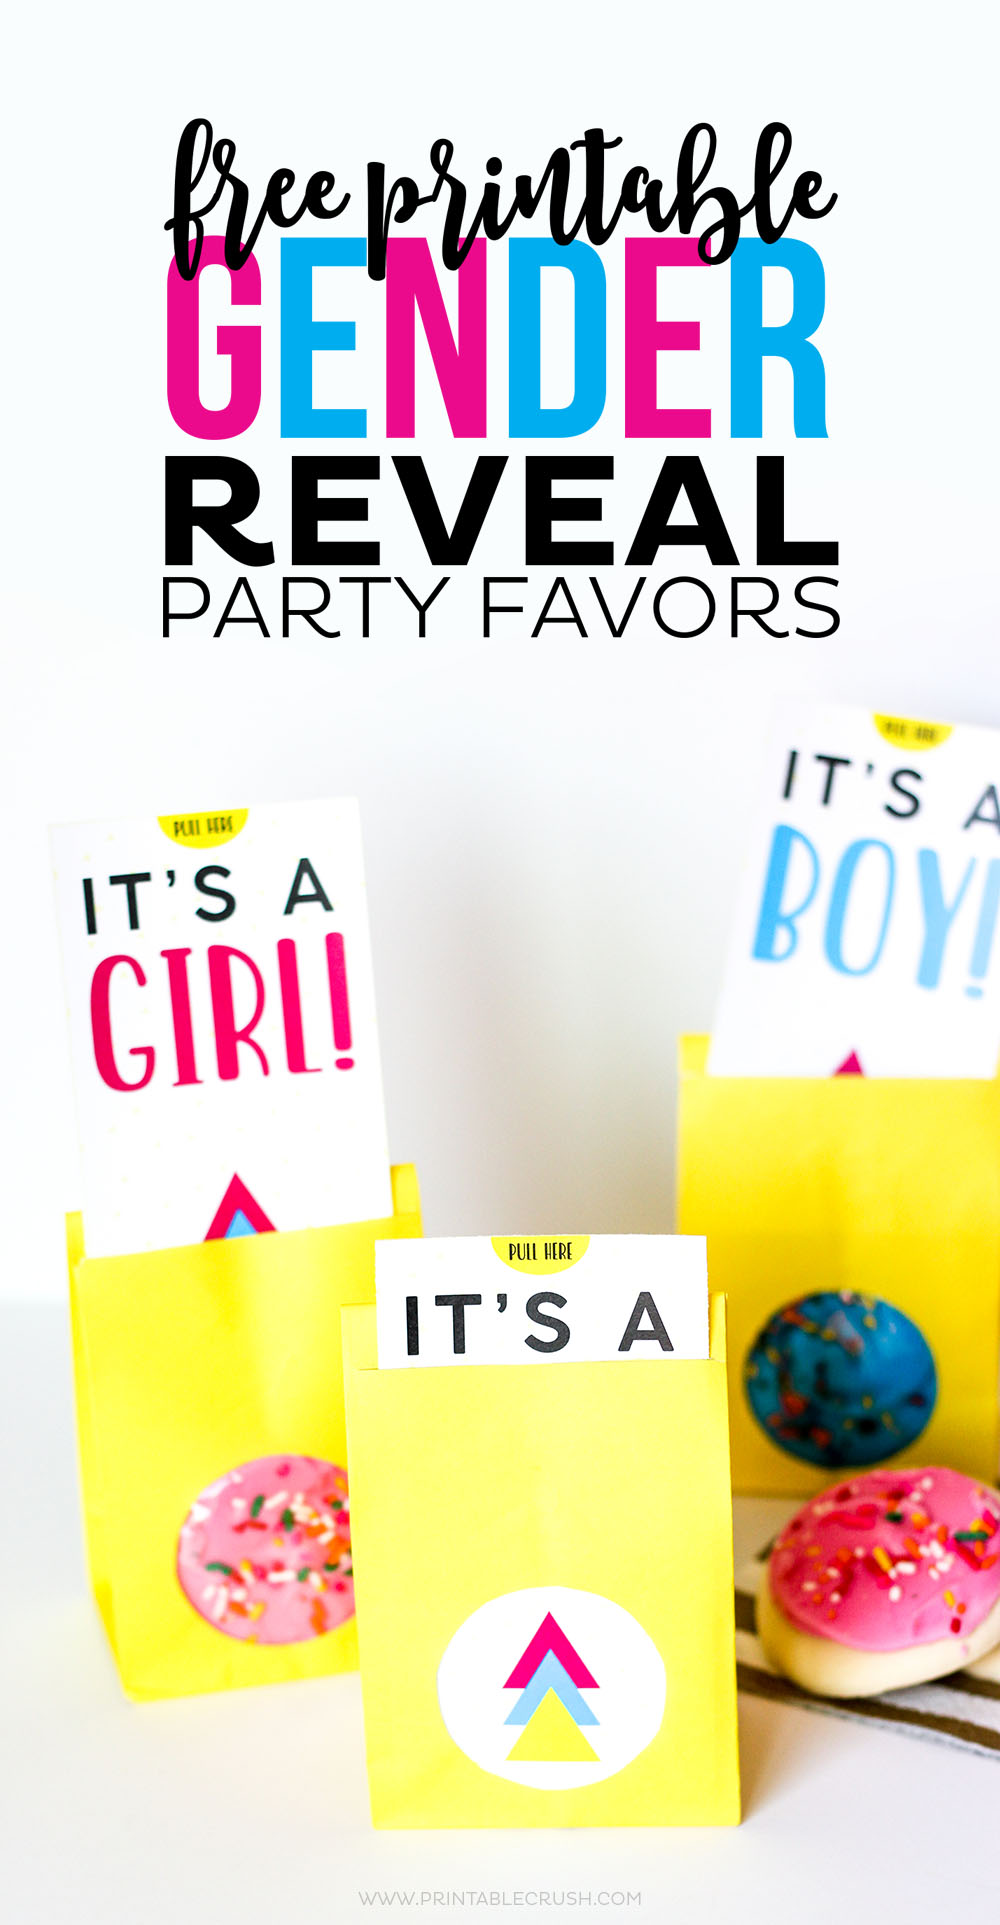 Yellow bags with gender reveal party favors and pink and blue frosted cookies